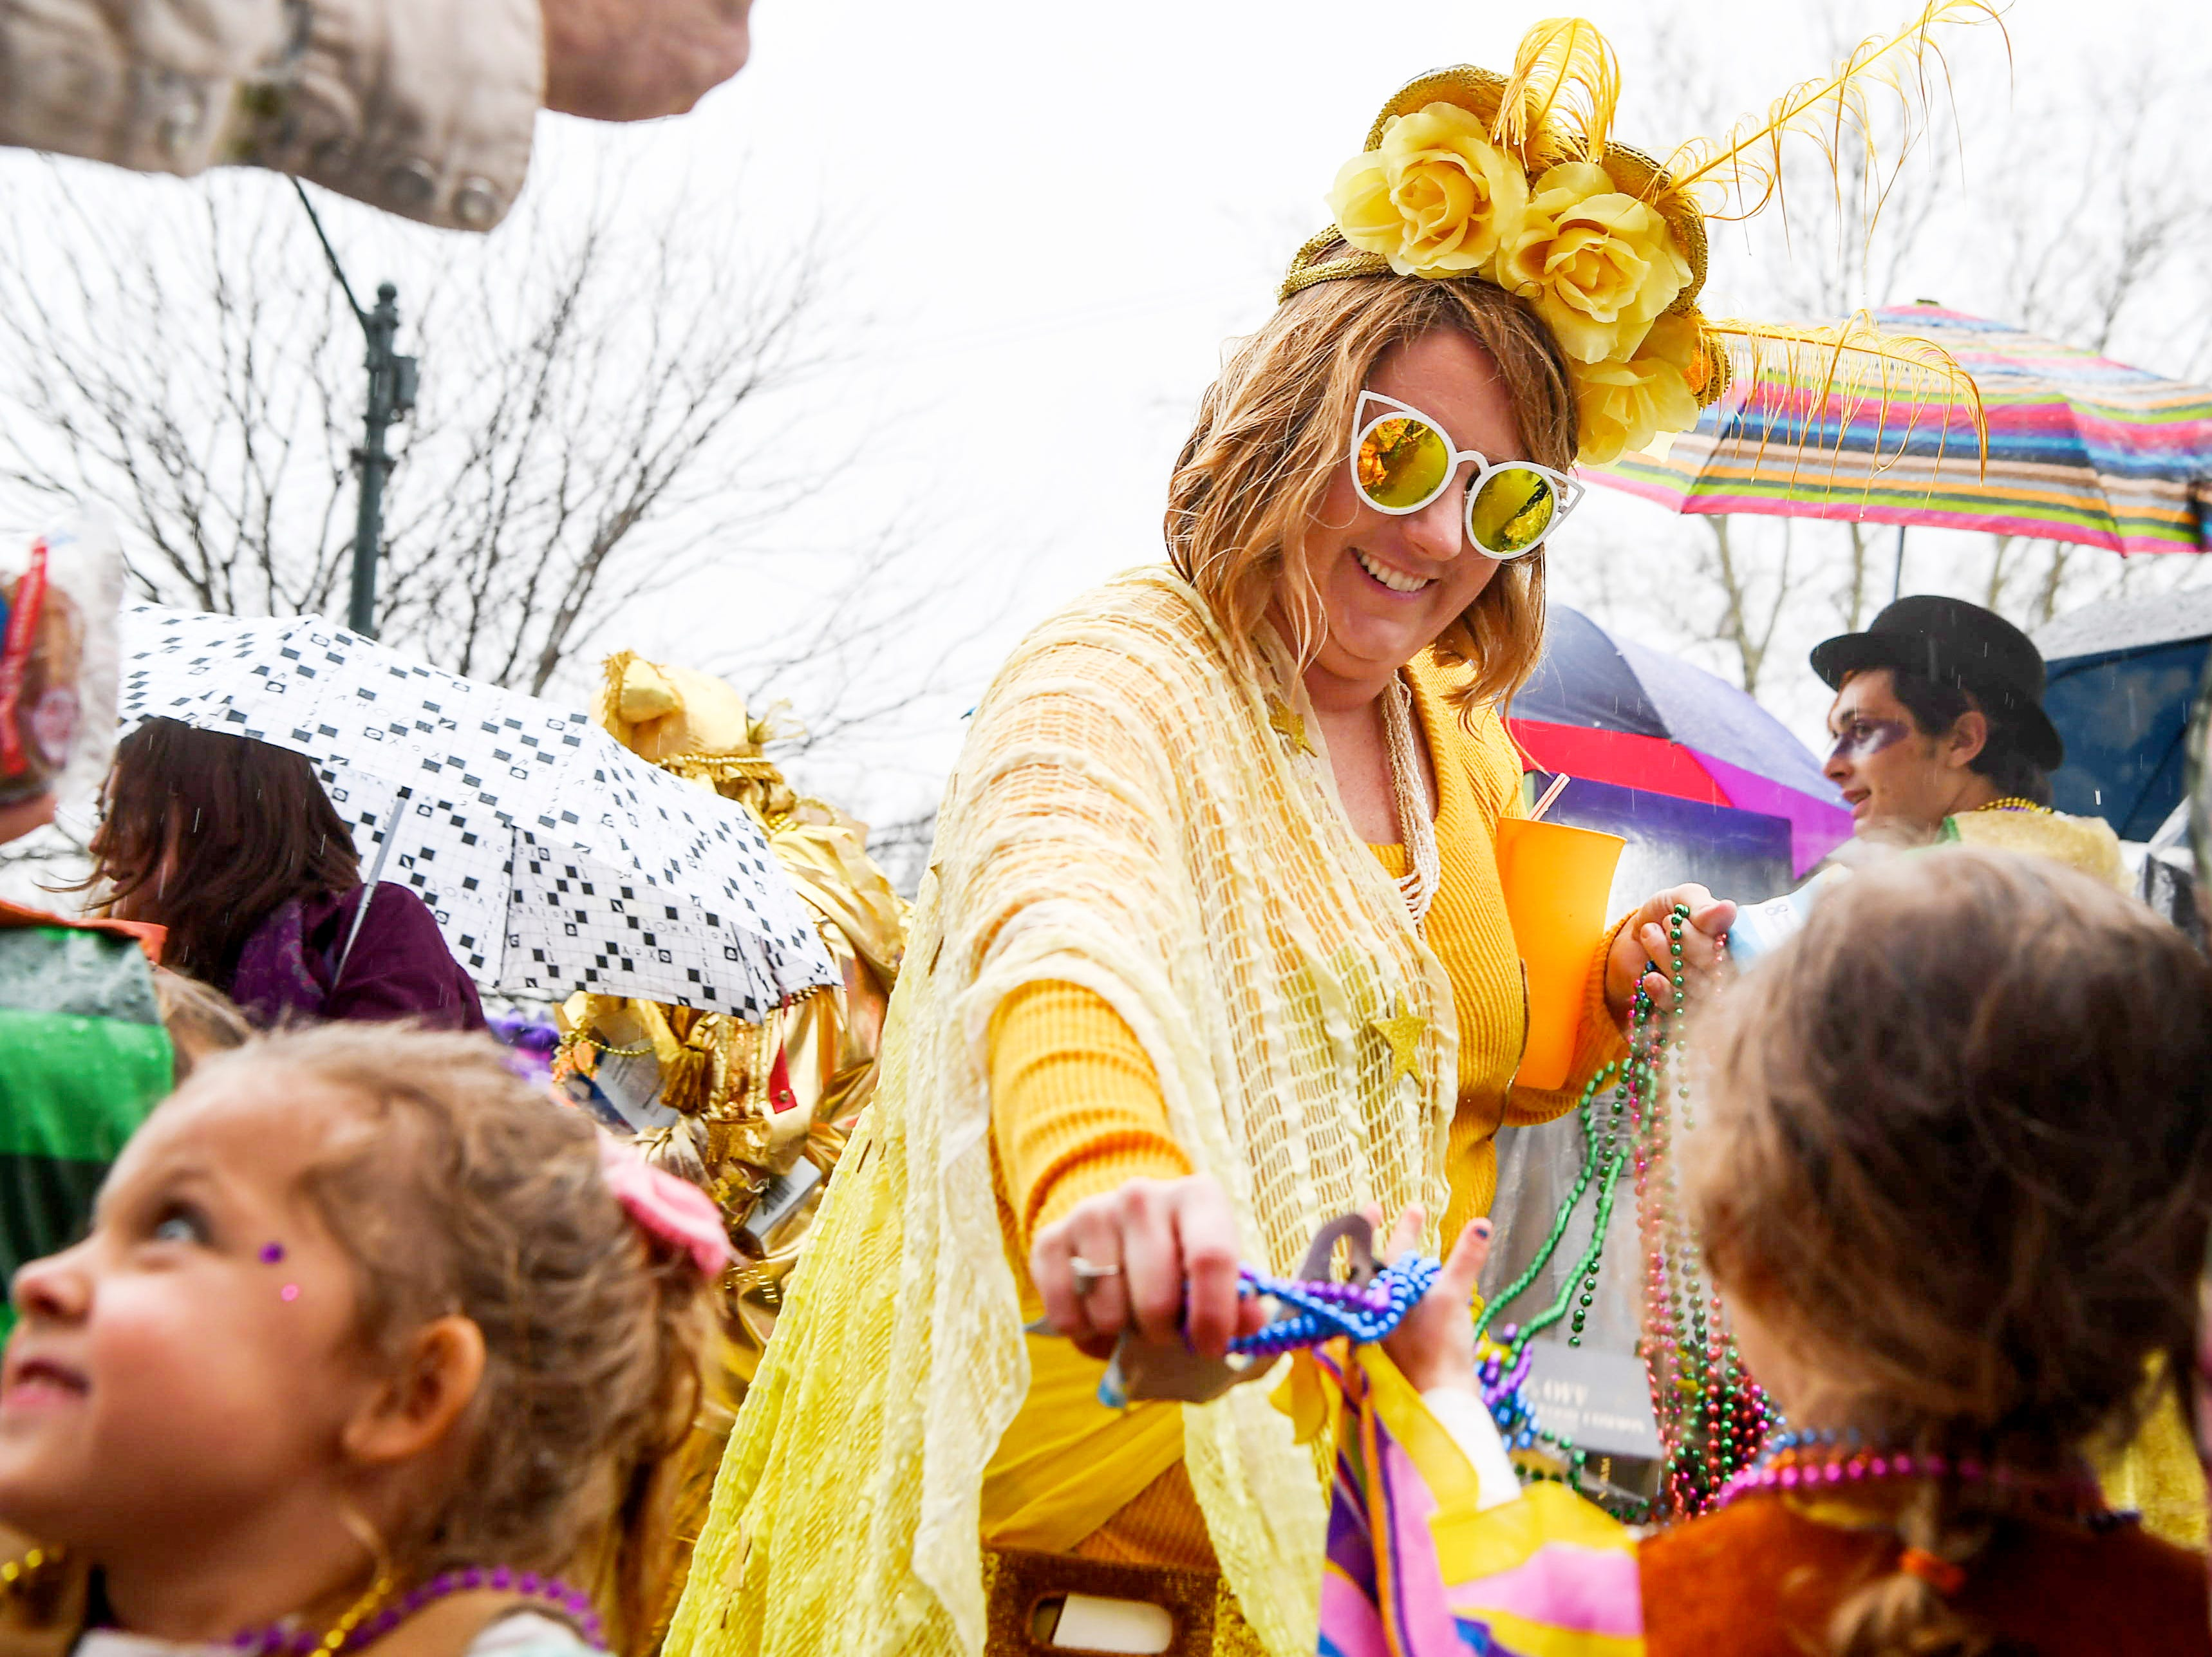 Tayler Sanders-Kyser hands out beads during the 12th annual Mardi Gras Parade March 3, 2019 in Asheville.